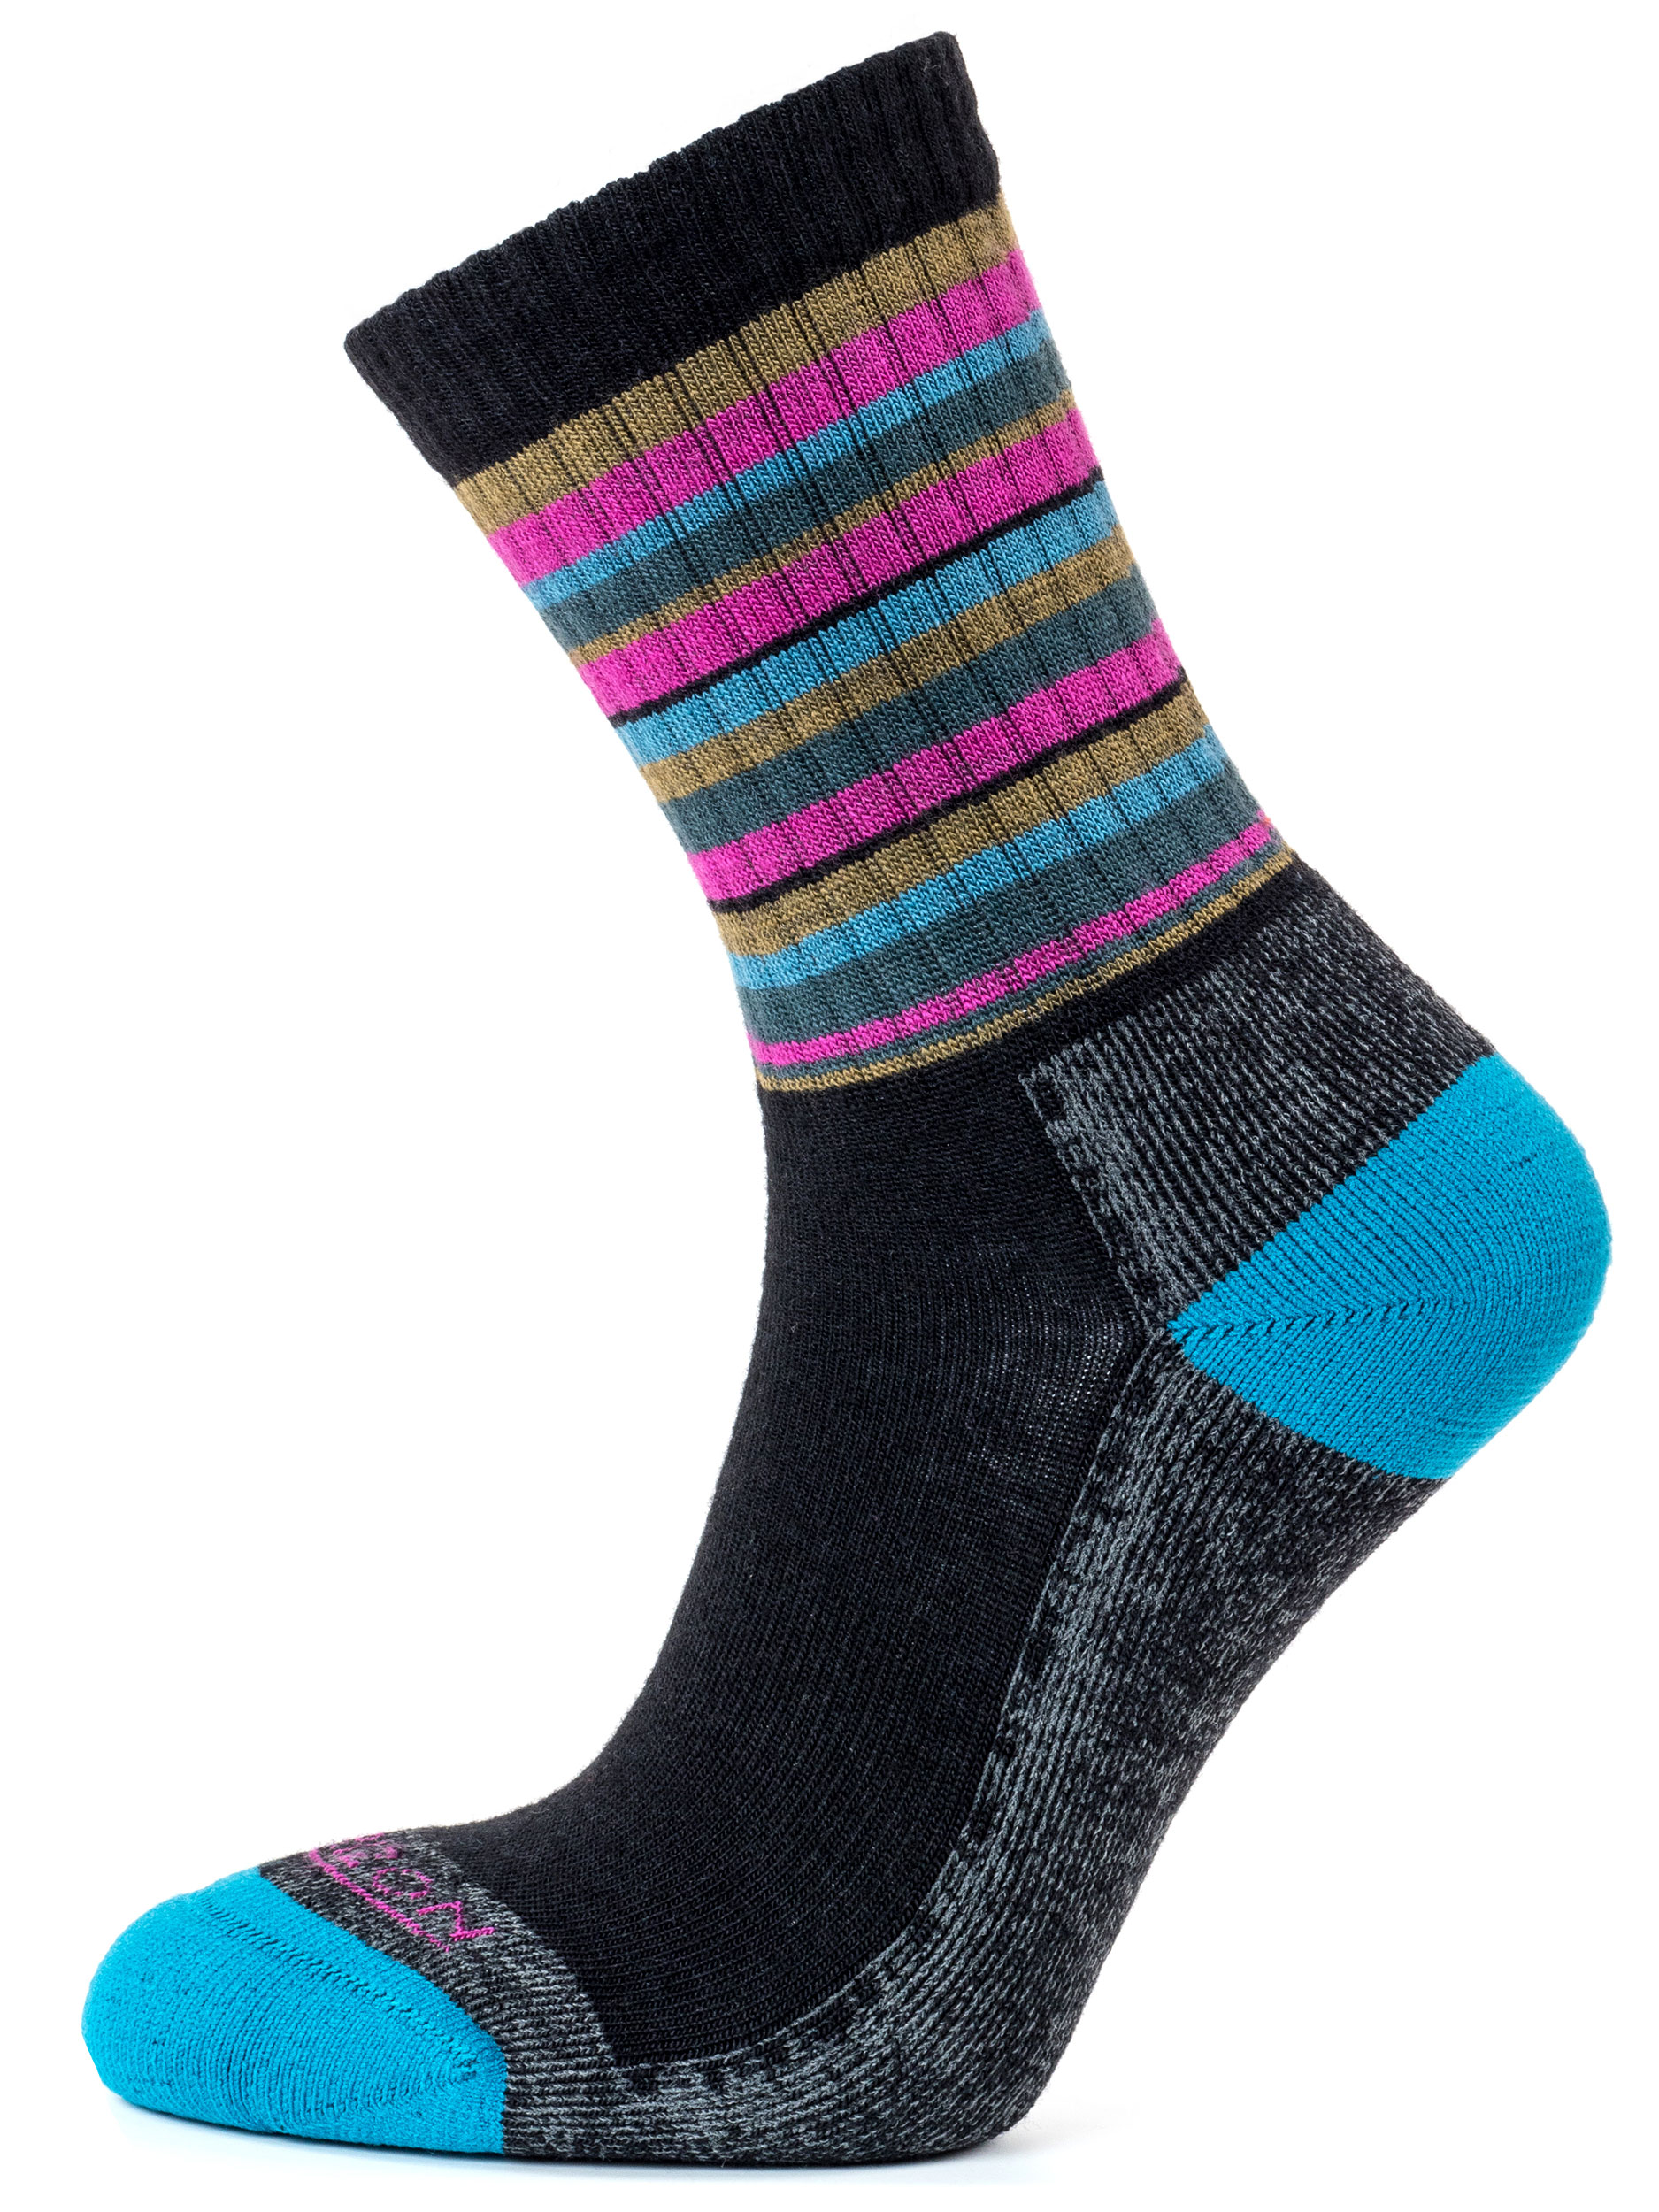 Micro Crew Women's Anthracite/Raspberry Stripe